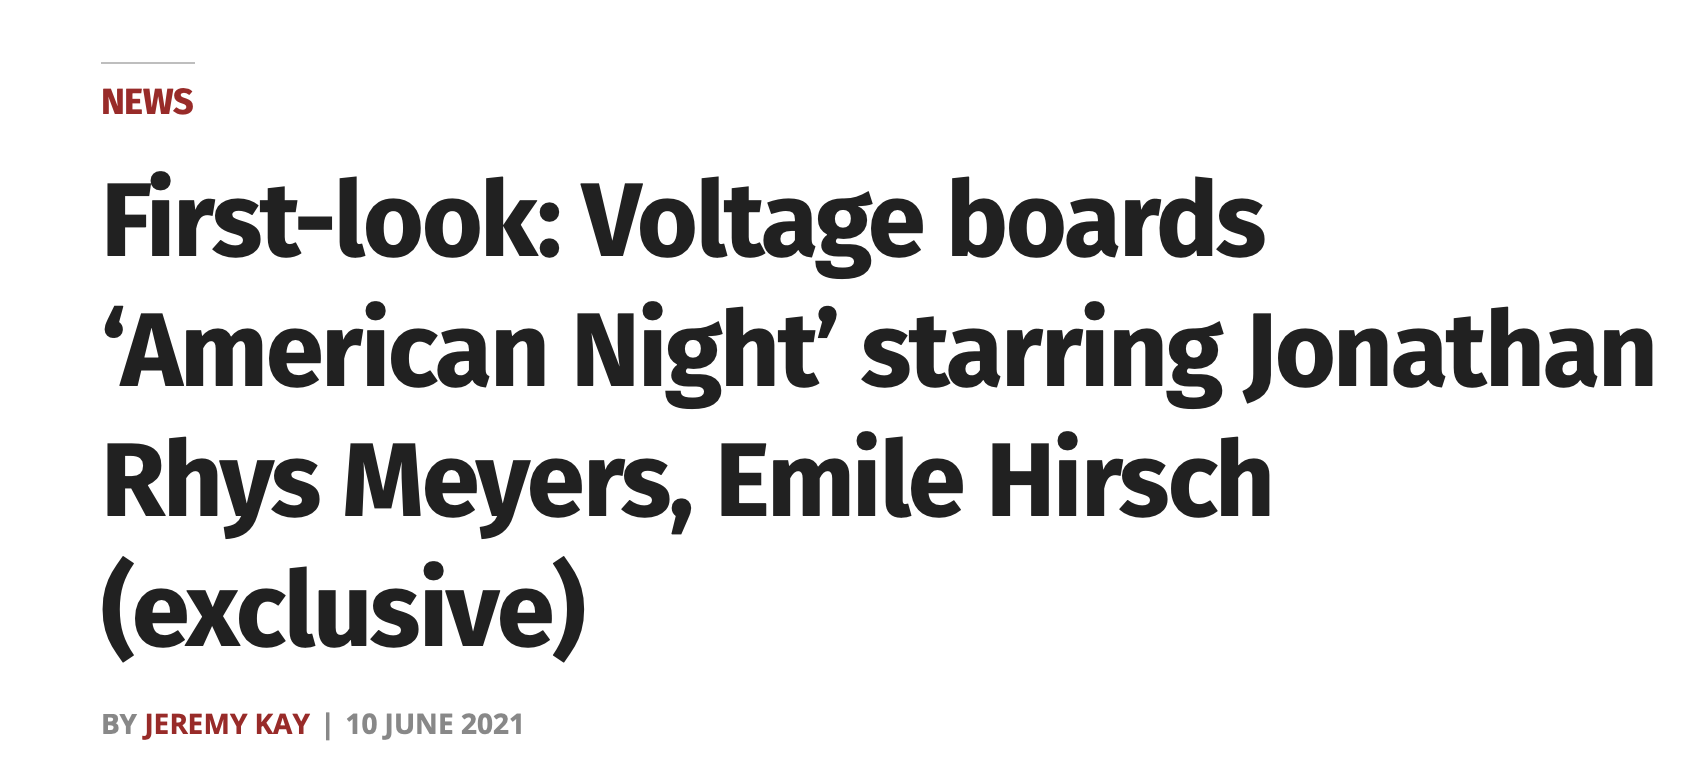 First-look: Voltage boards 'American Night' starring Jonathan Rhys Meyers, Emile Hirsch (exclusive)